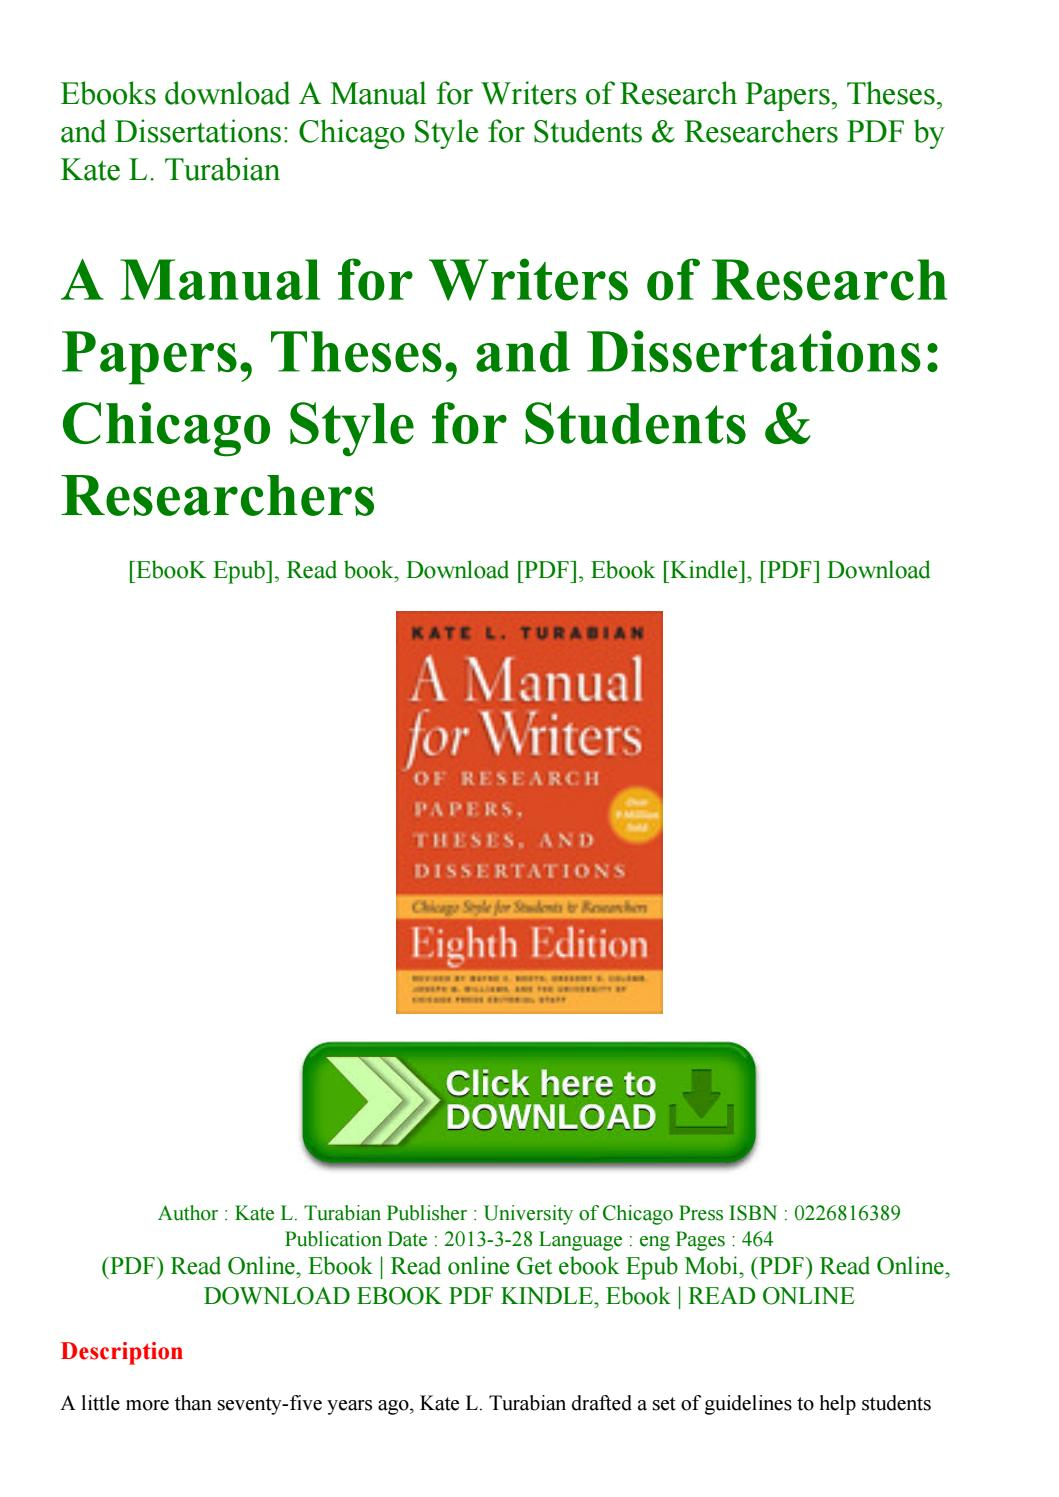 005 Page 1 Manual For Writers Of Researchs Theses And Dissertations Turabian Pdf Wonderful A Research Papers Full